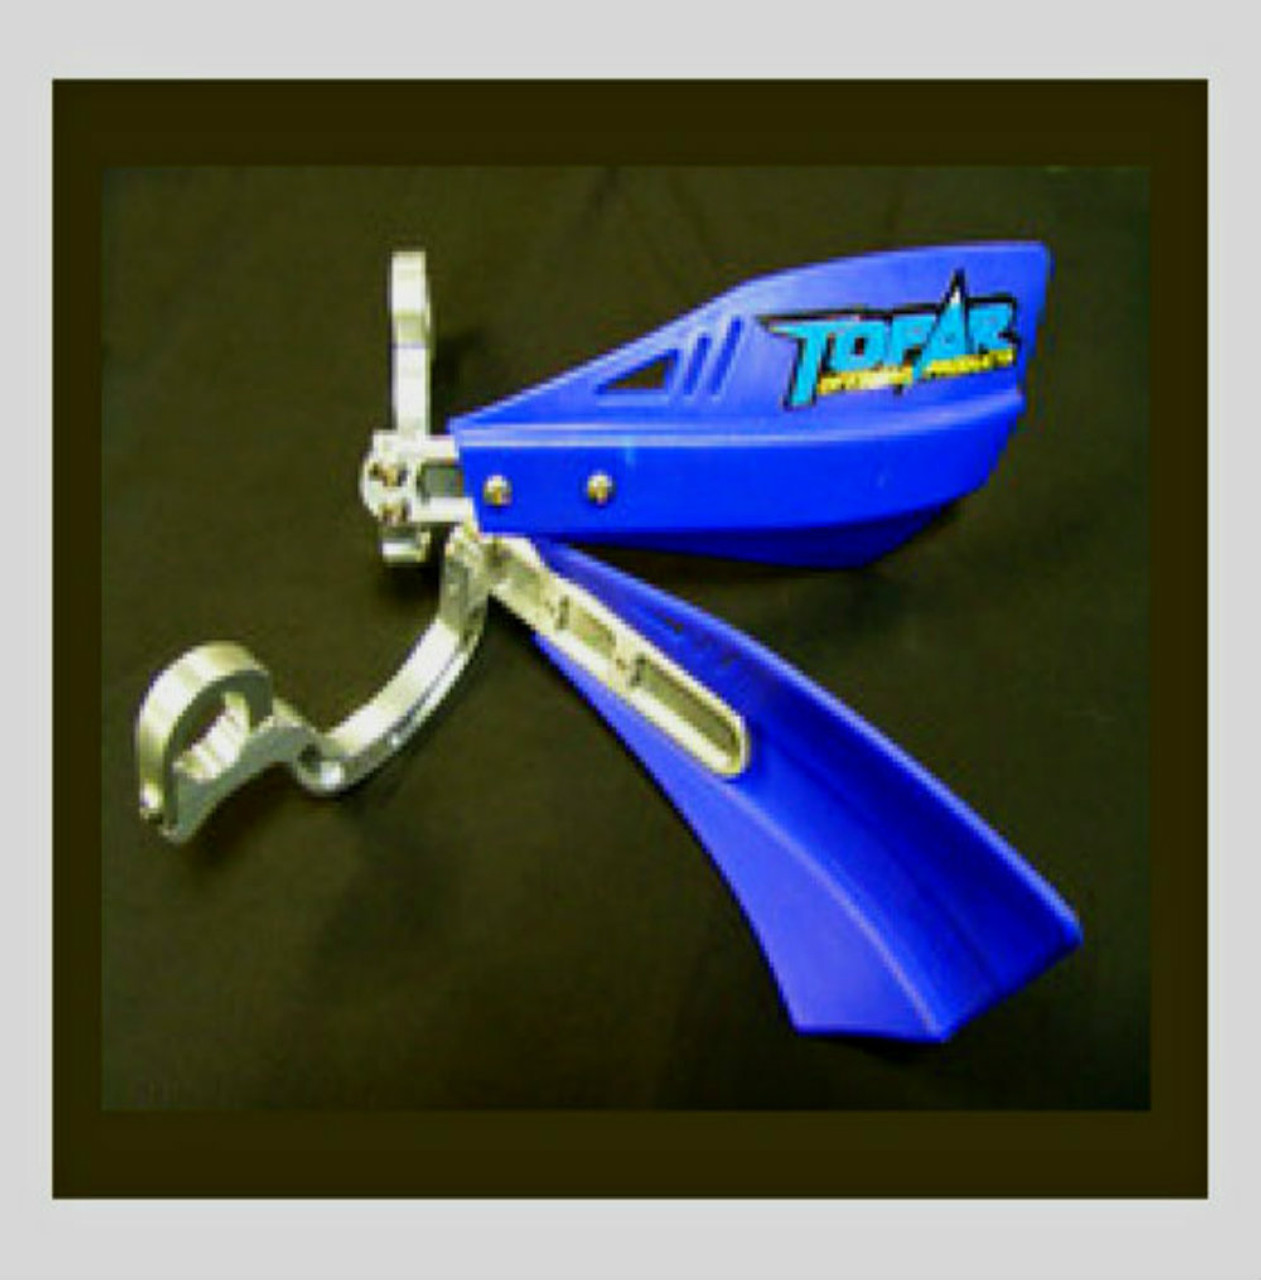 TOPAR RACING HAND GUARD SET - BILLET ALUMINUM FRAME CONSTRUCTION - Shown Assembled